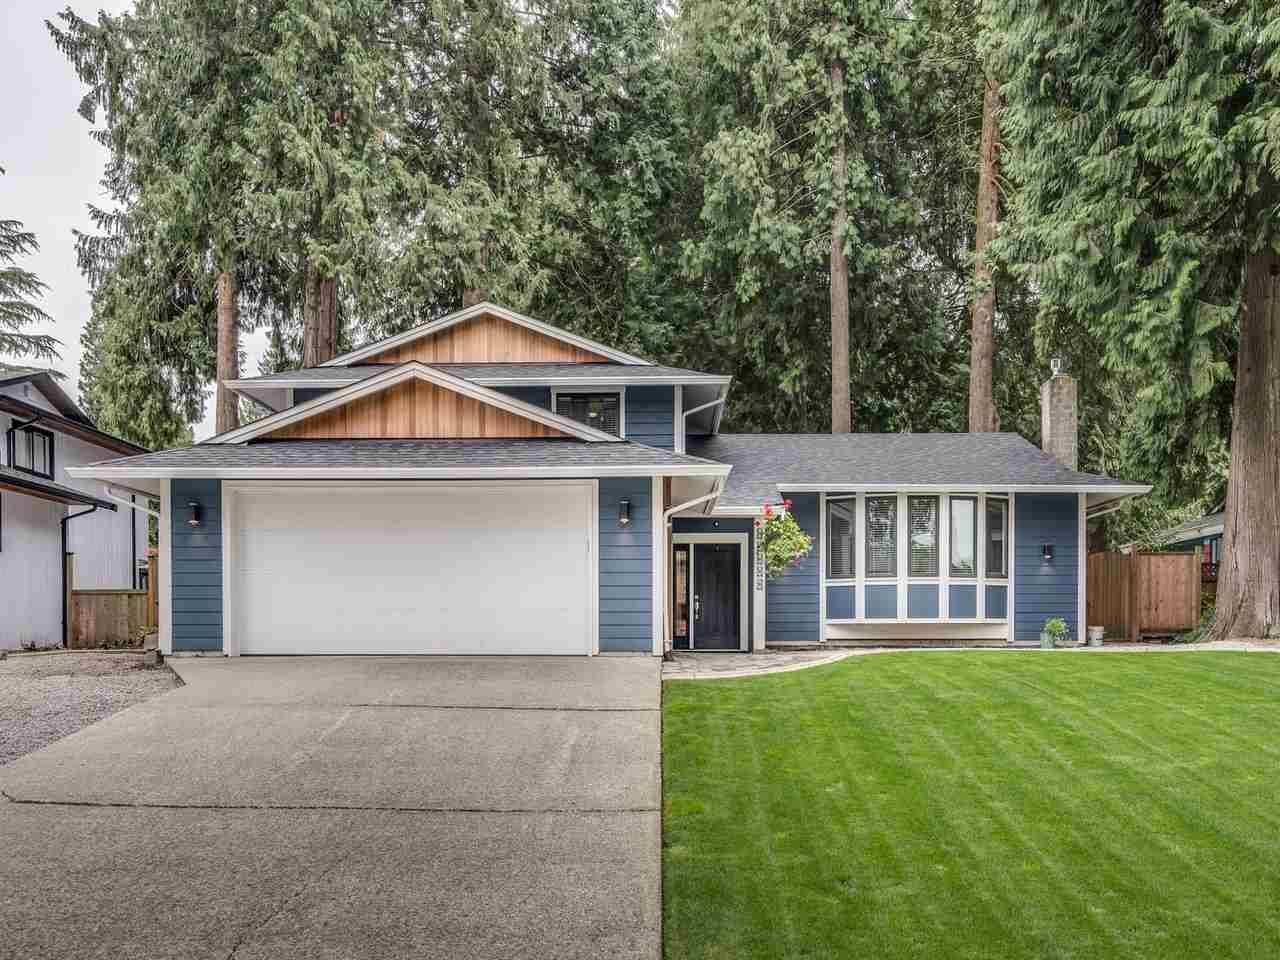 Main Photo: 19630 117A Avenue in Pitt Meadows: Central Meadows House for sale : MLS®# R2493698